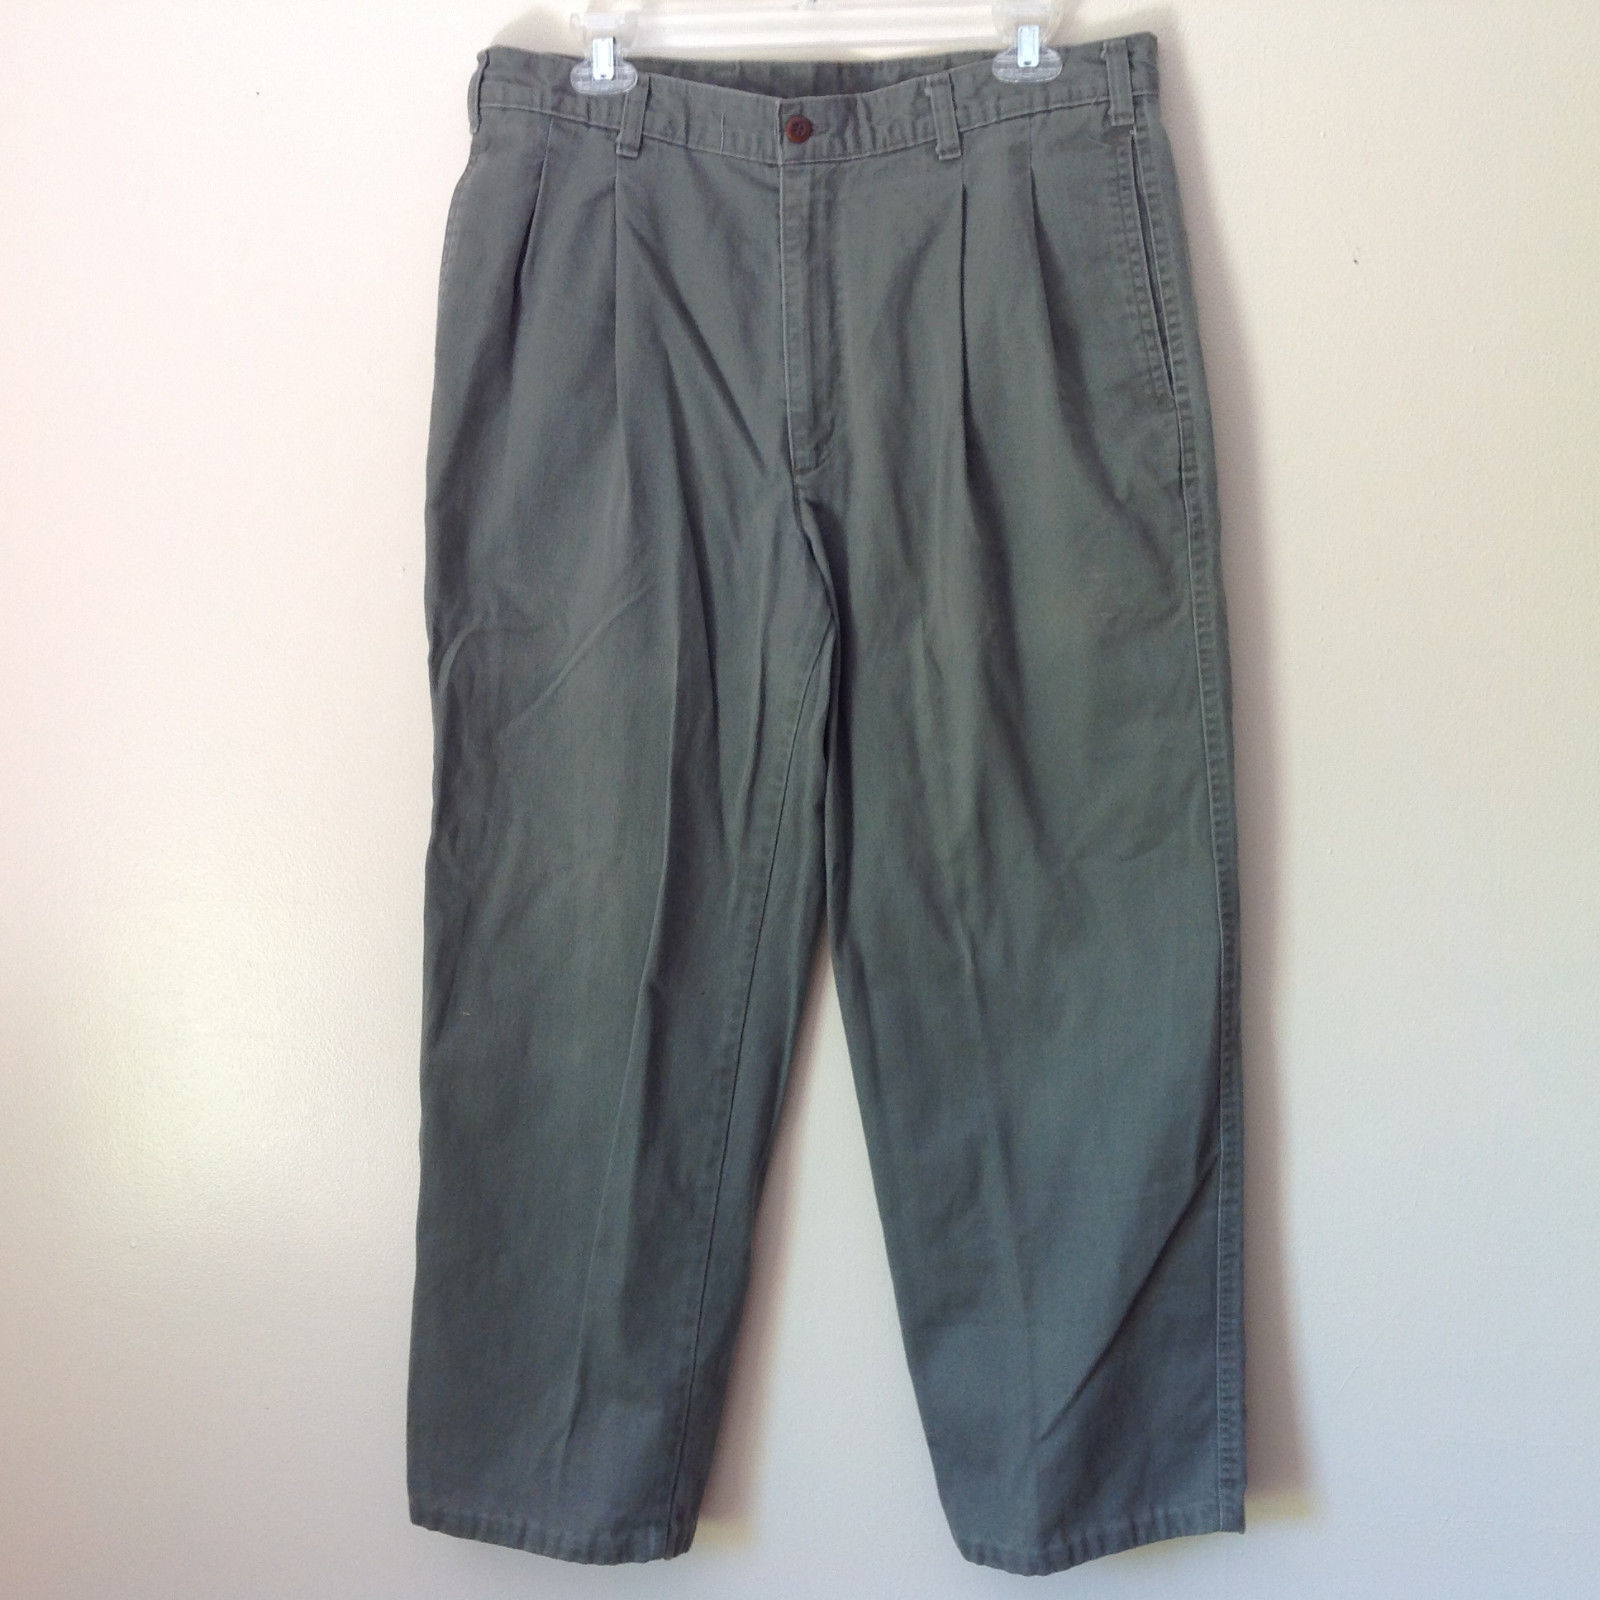 Faded Green Casual Pants by DOCKERS Classic Fit 100 Percent Cotton Size W34 L29